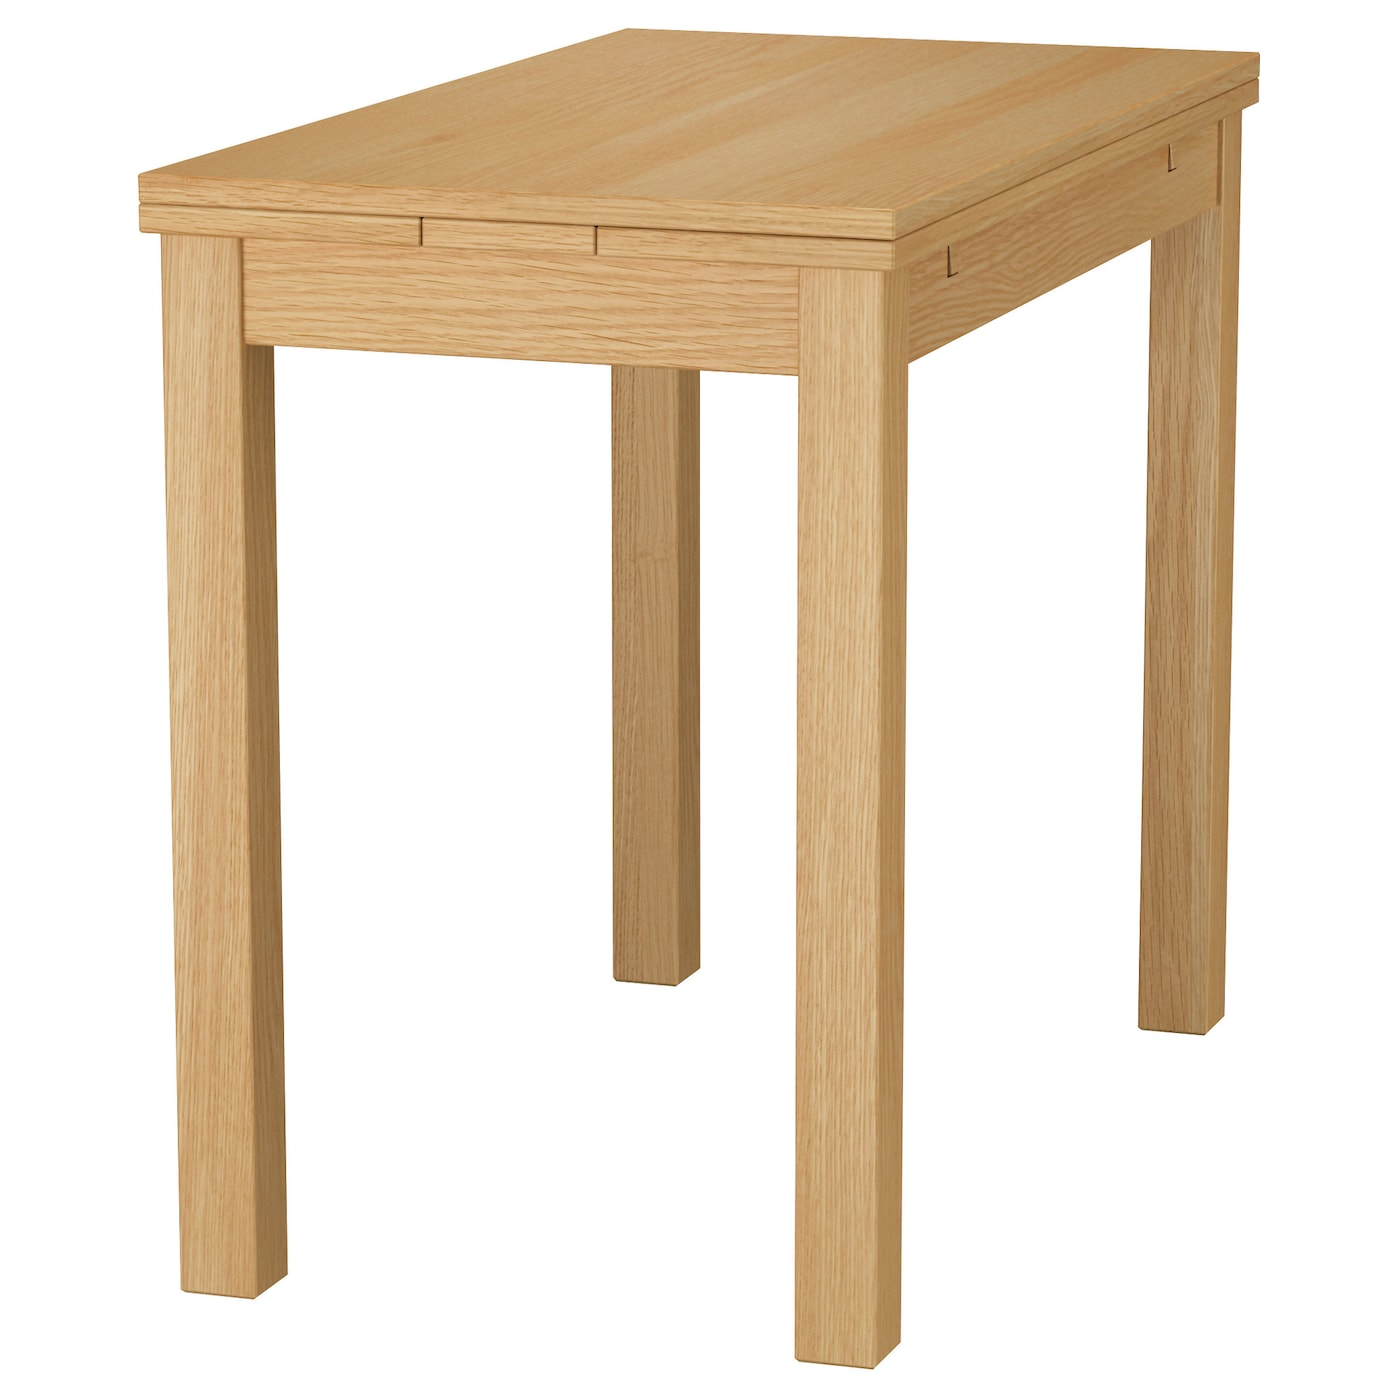 dining table top view png. ikea bjursta extendable table 2 pull-out leaves included. ideal as an end dining top view png